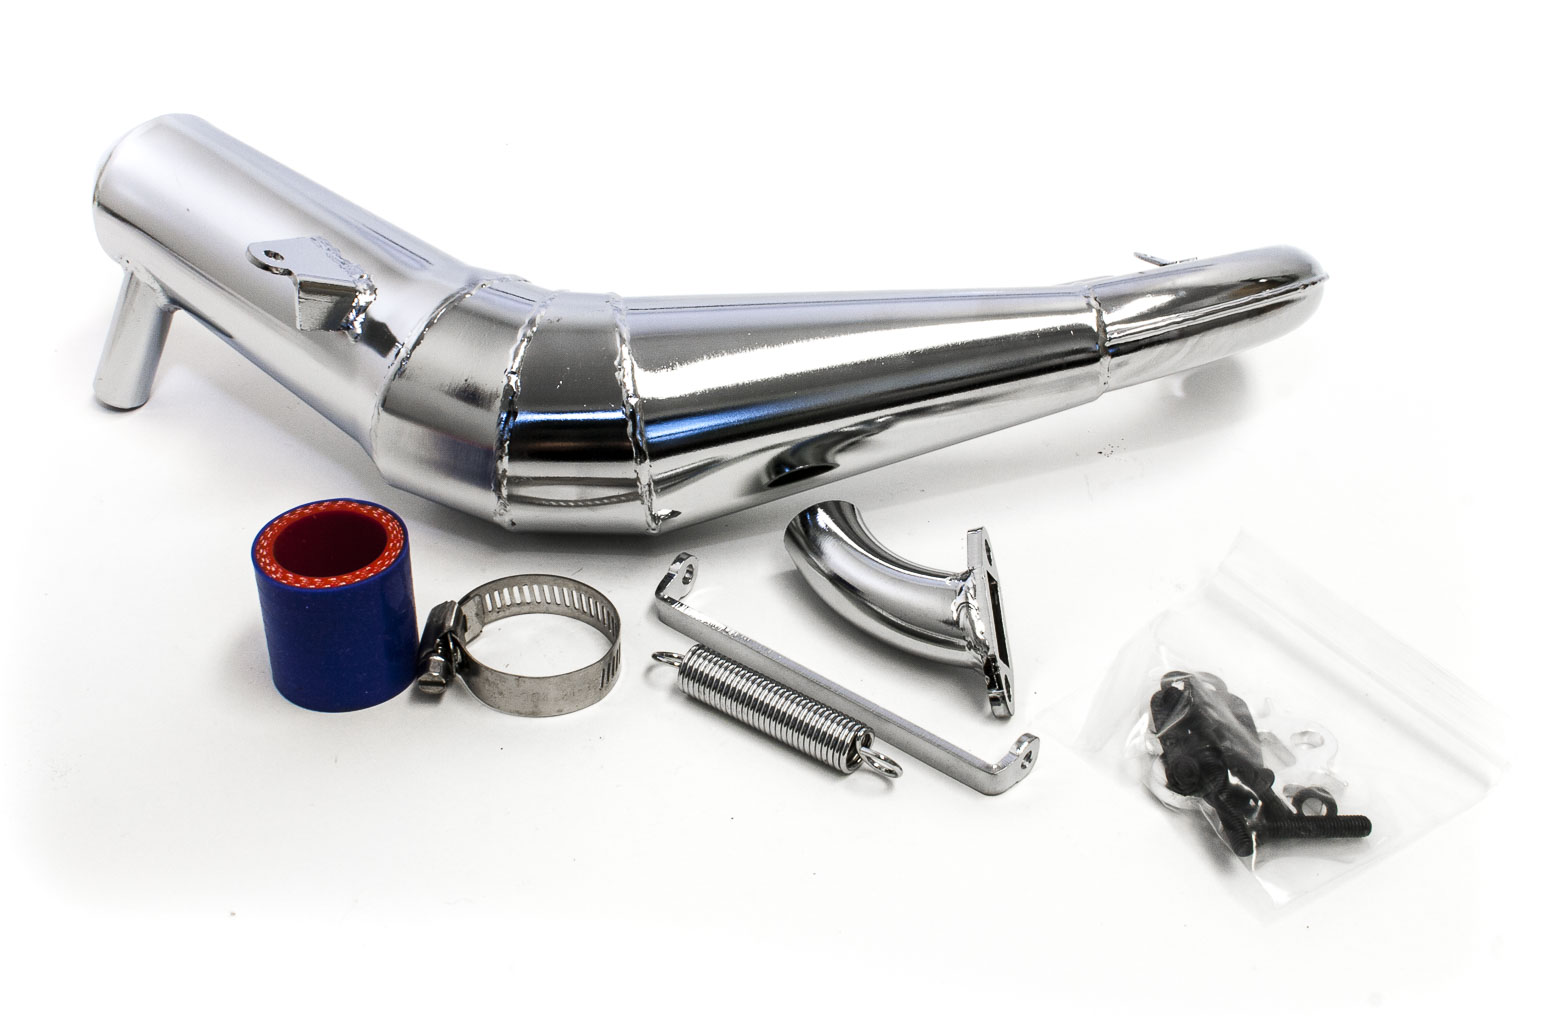 Chrome Steel Performance V2 Silenced Tuned Pipe Fits LOSI 5IVE-T, Rovan LT and KM X2